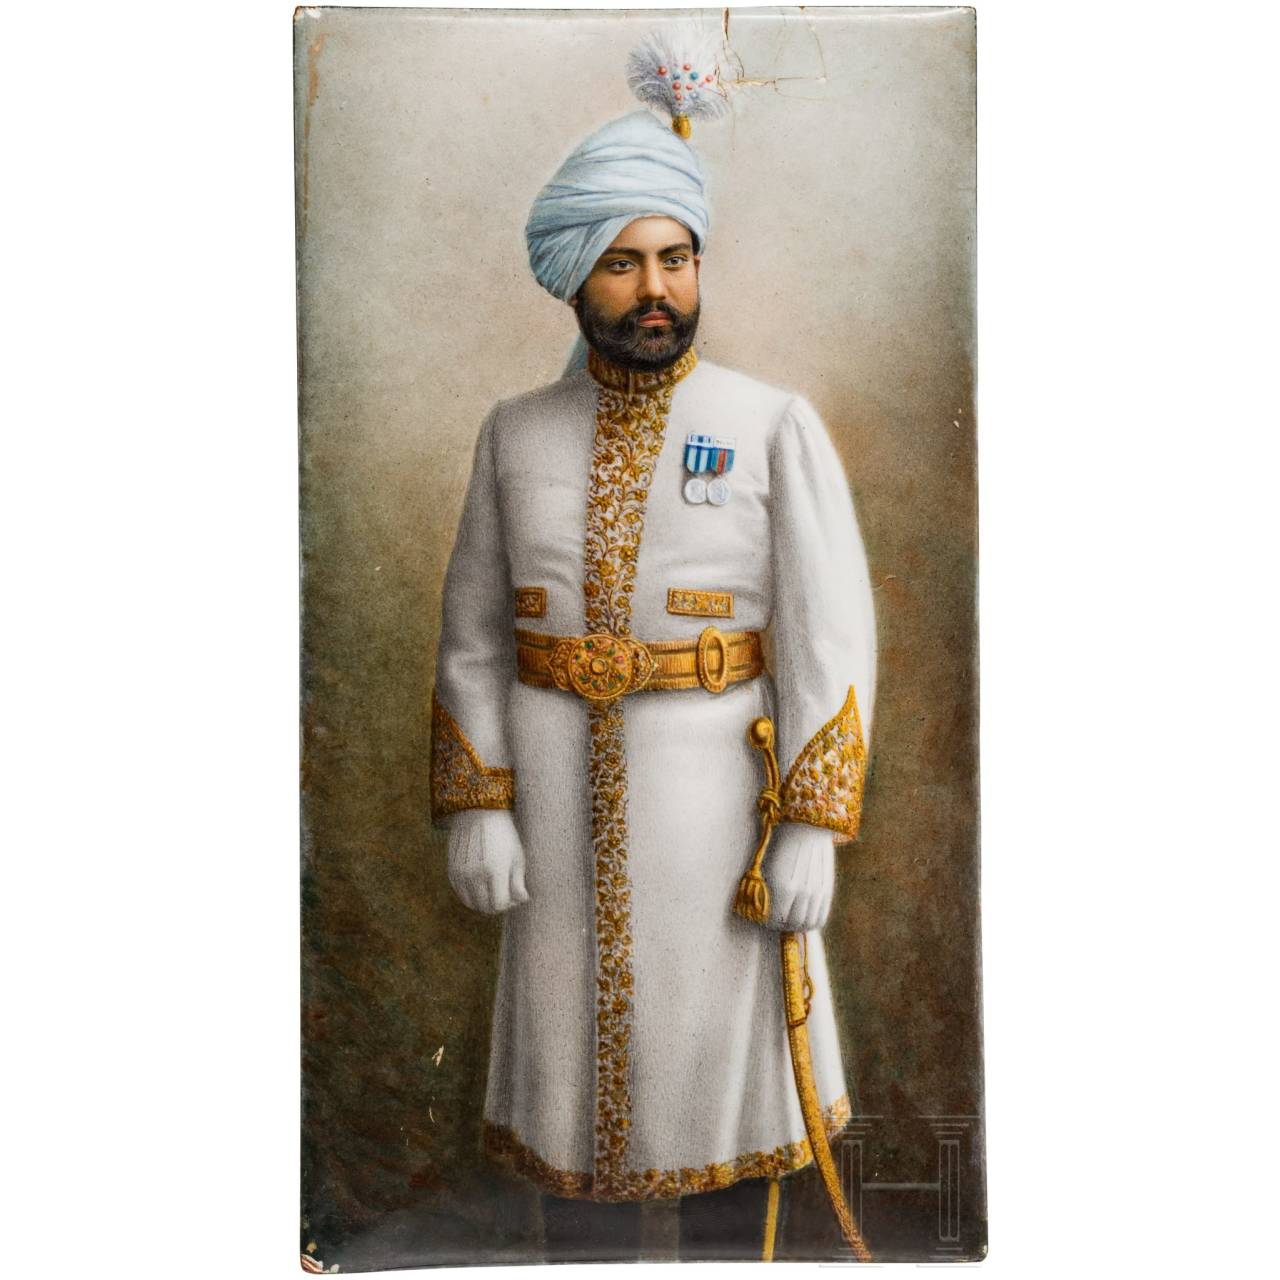 An enamelled portrait of a Maharaja on copper plate, France, early 20th century, maker's name in ink on the back